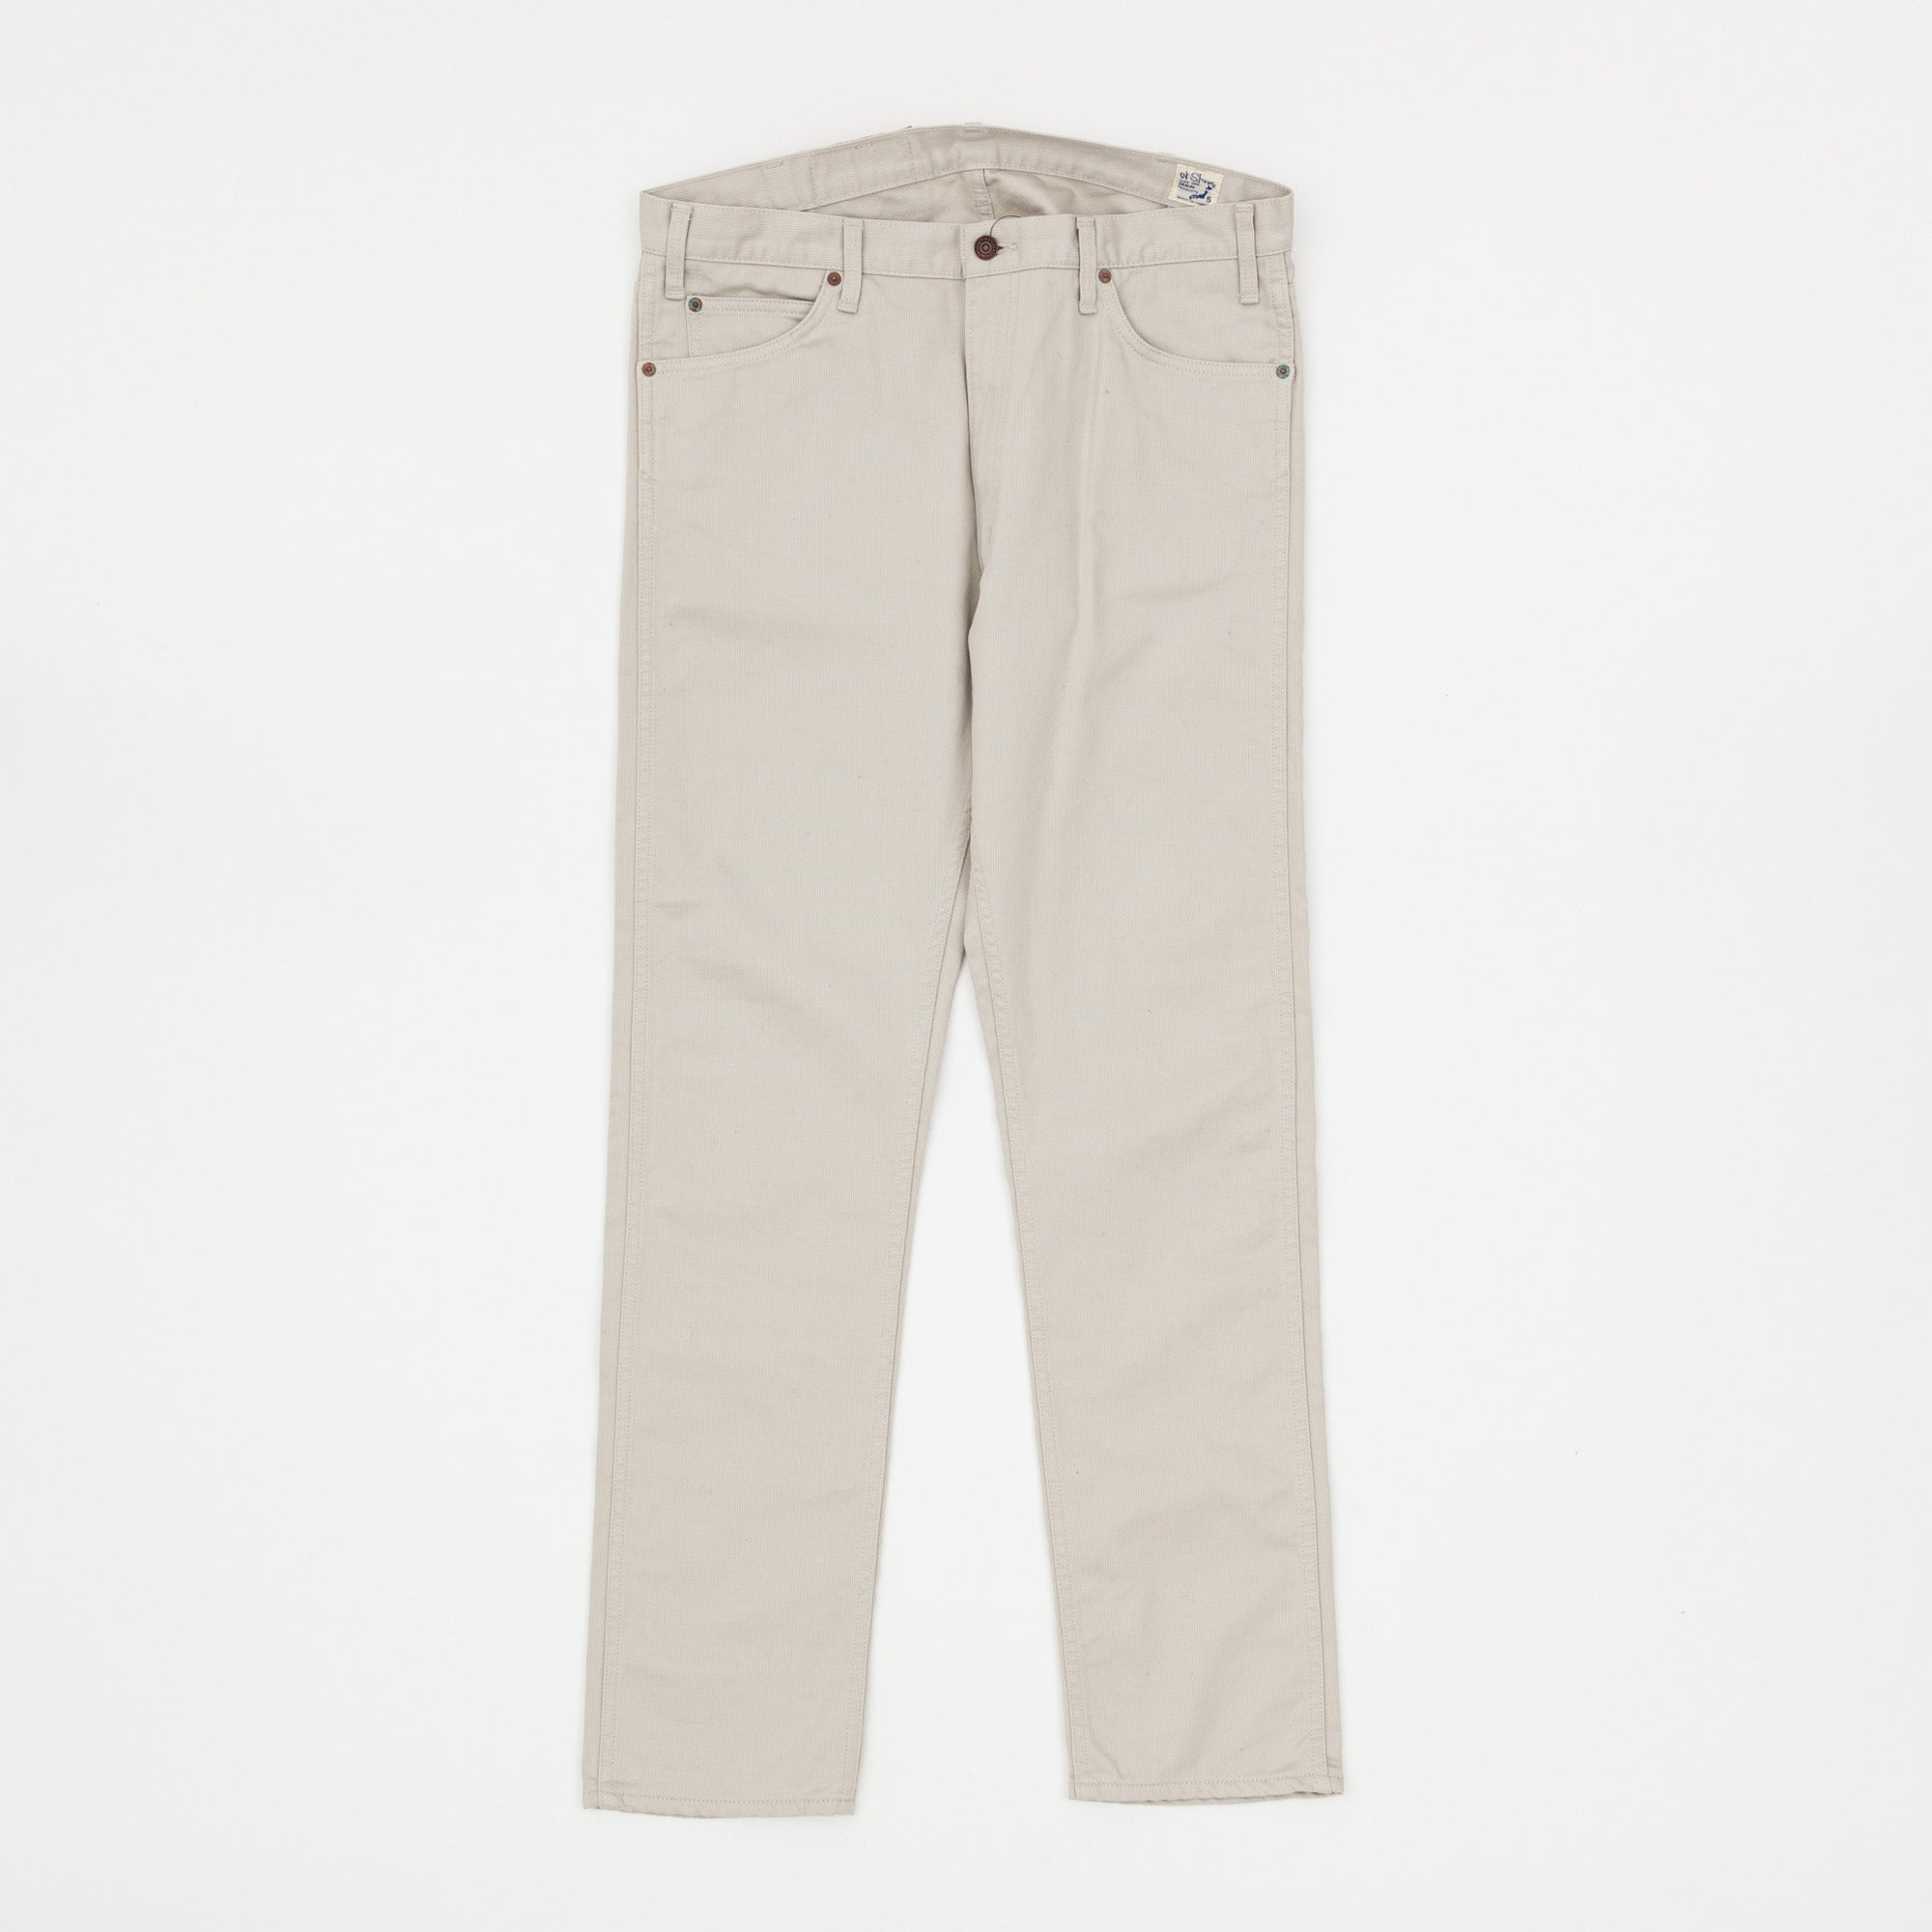 Orslow Ivy Fit 107 Bedford Jeans